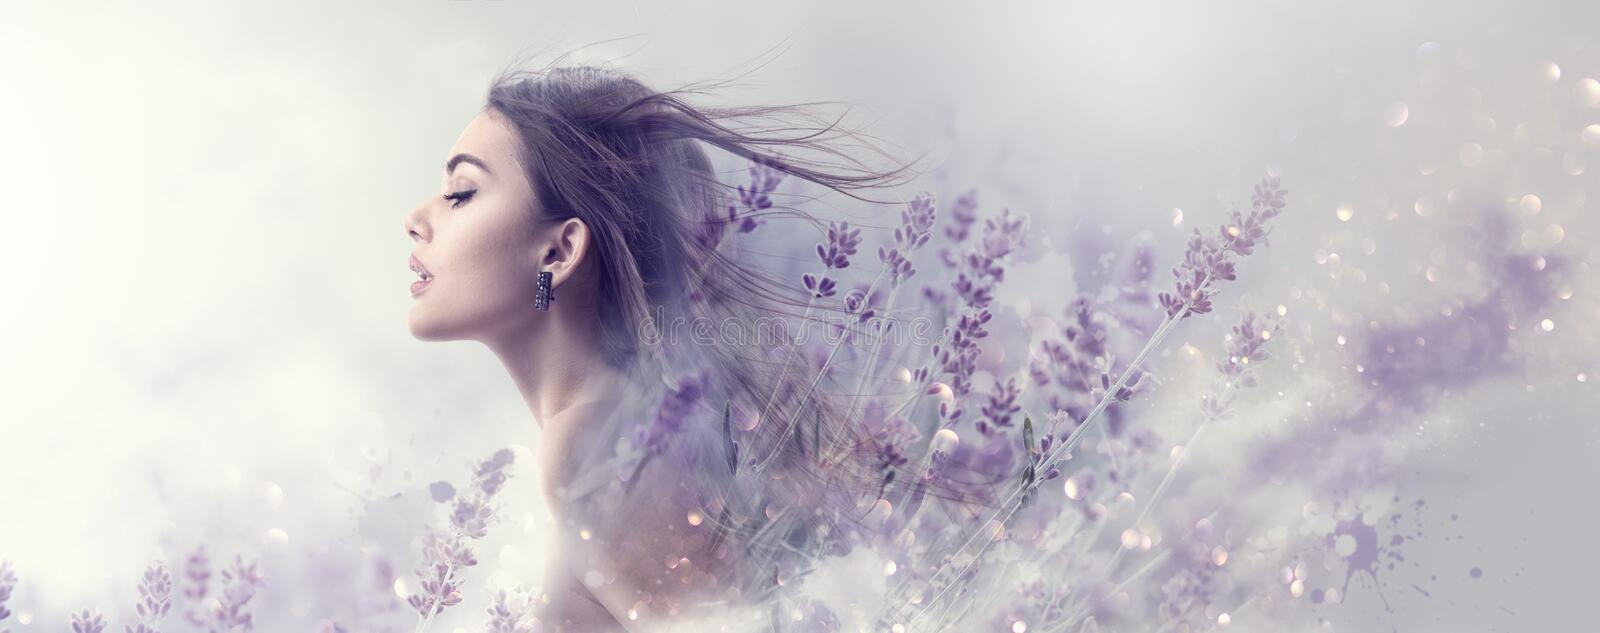 Beauty model girl with lavender flowers. Beautiful young brunette woman with flying long hair profile portrait. Fantasy watercolor stock photo